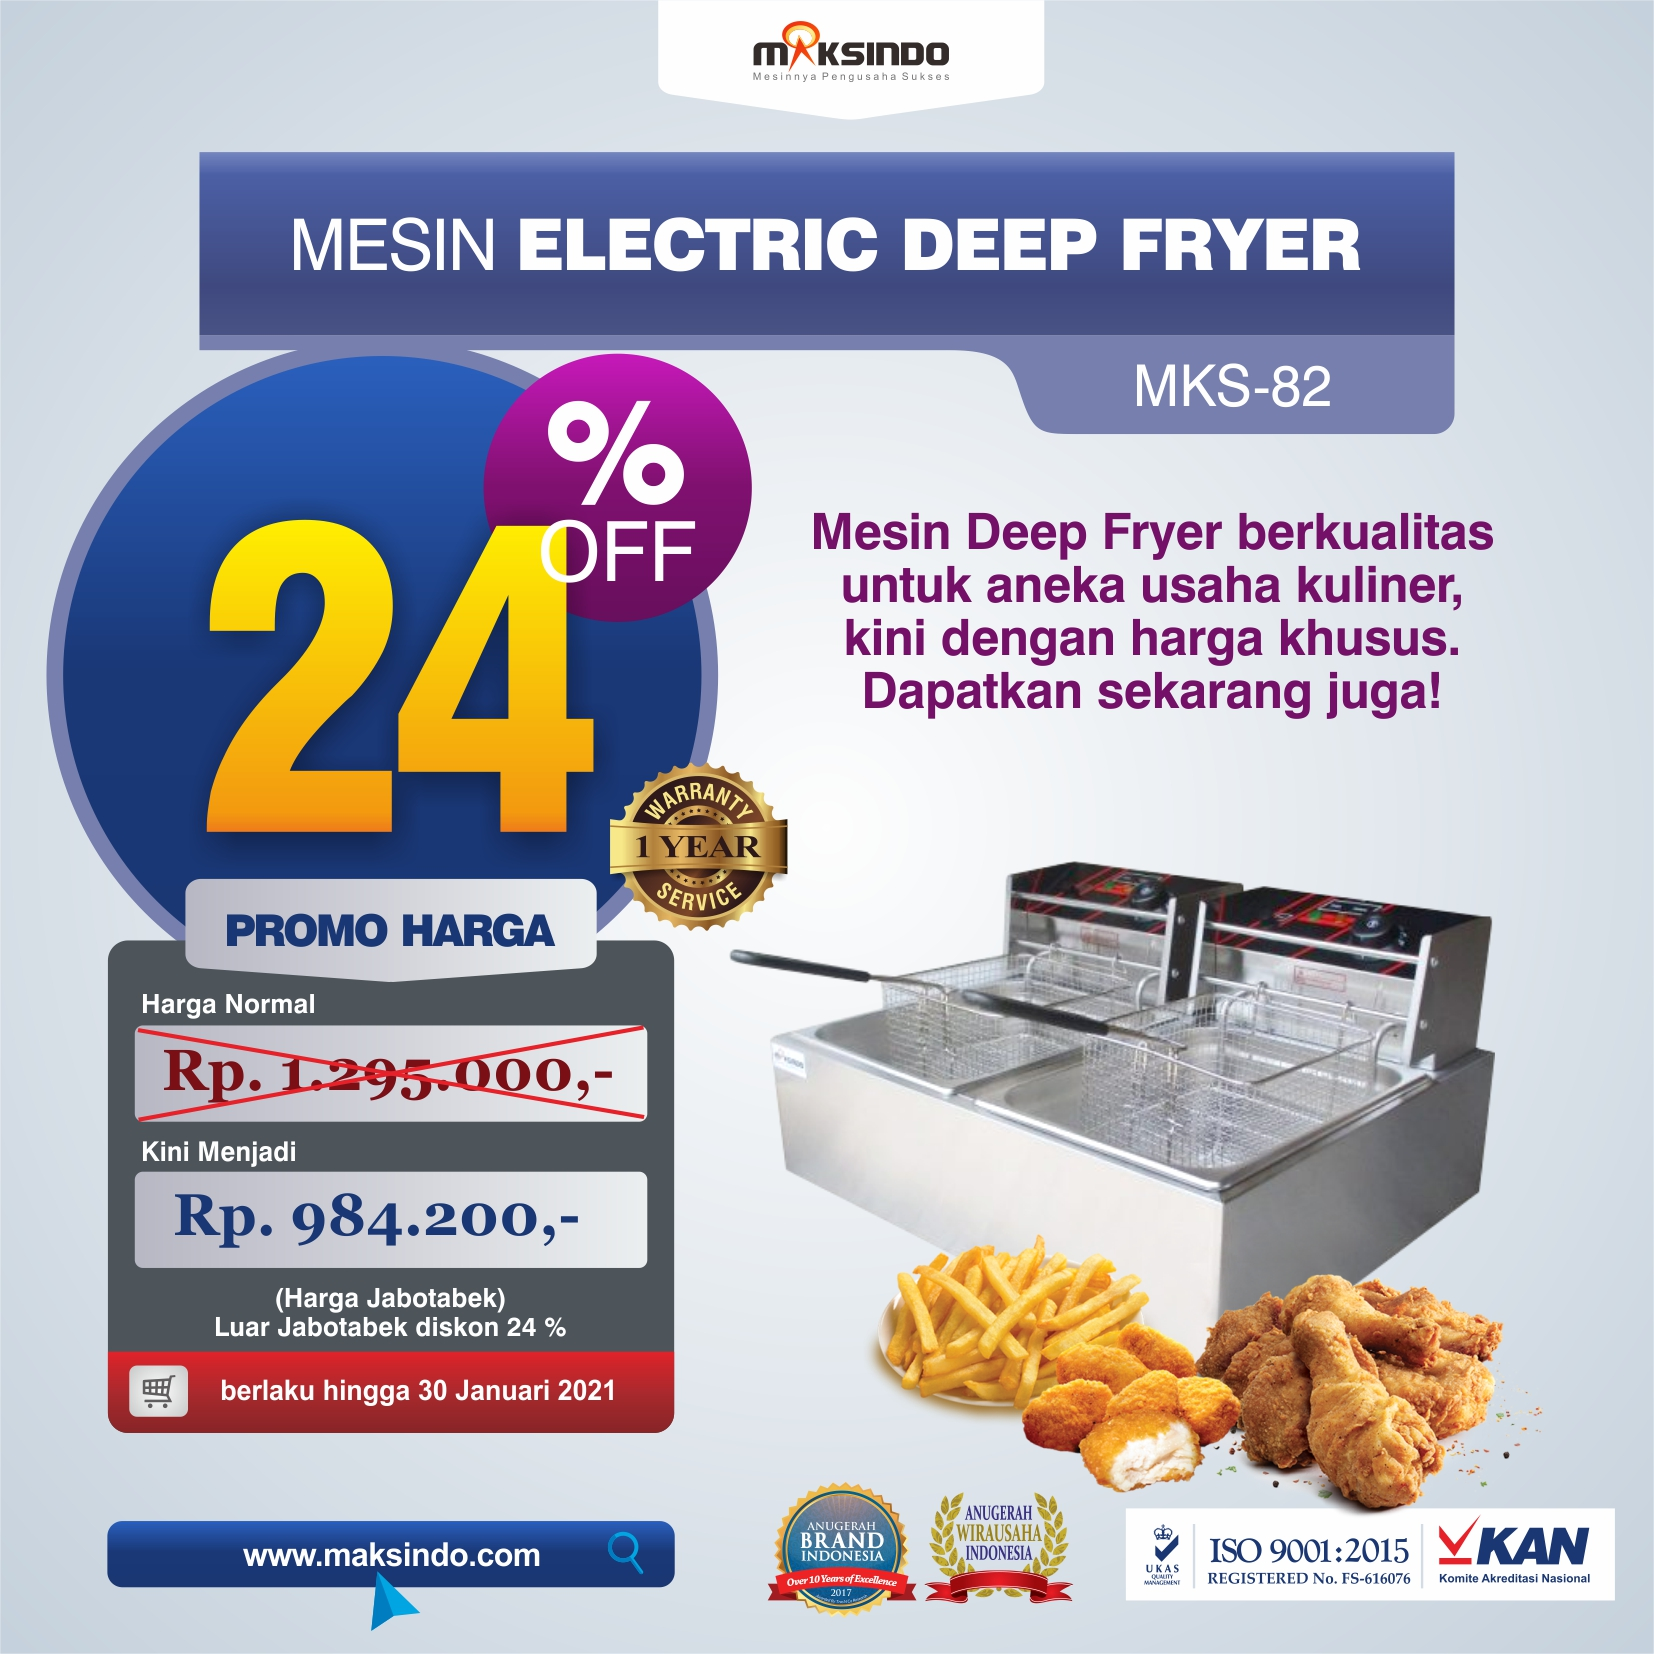 Jual Mesin Electric Deep Fryer MKS-82 di Makassar